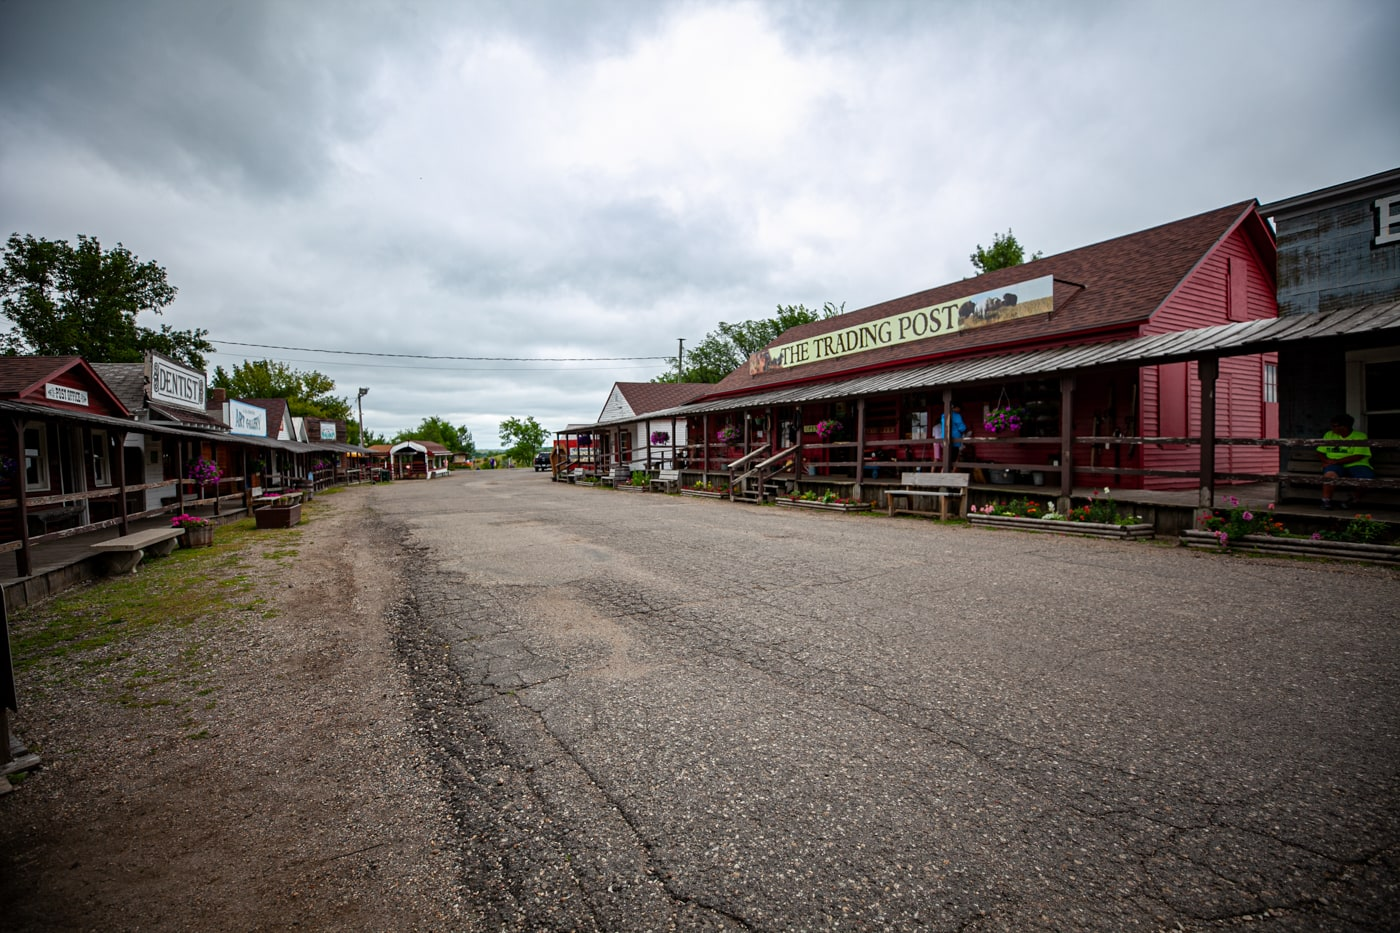 The Trading Post at Frontier Village in Jamestown, North Dakota | Roadside Attractions in North Dakota